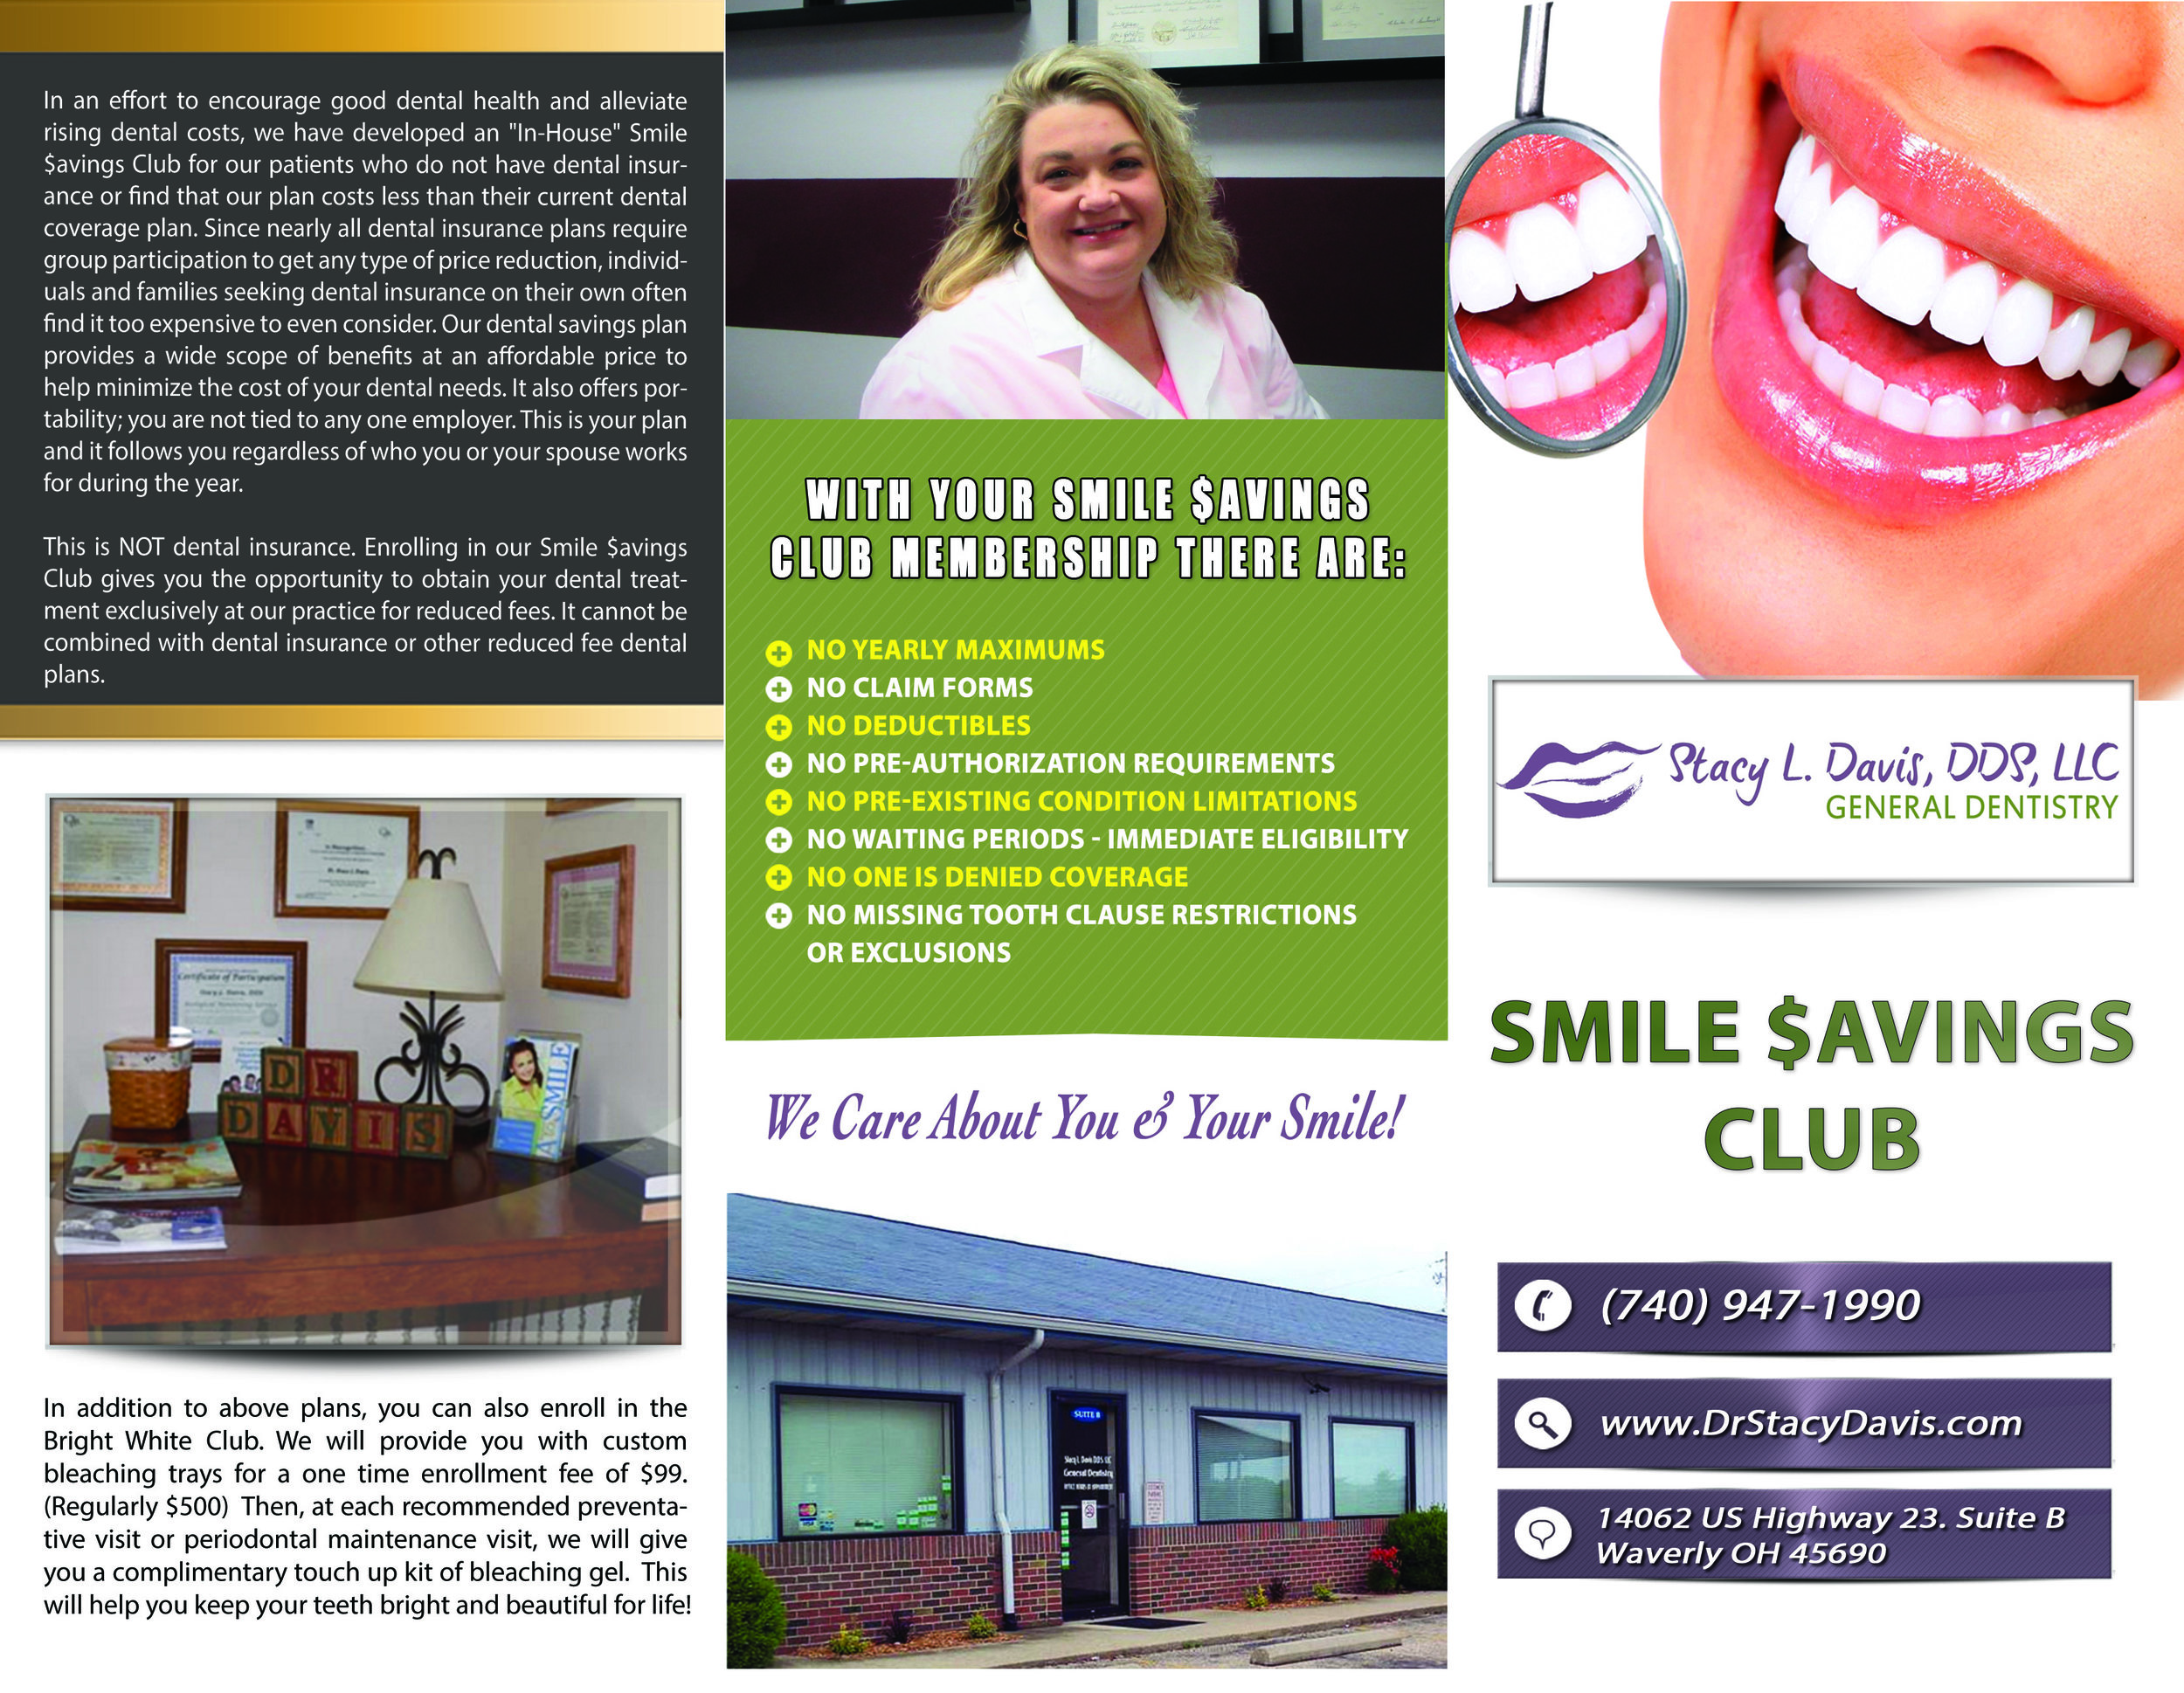 Smile $avings Club Brochure Front (Click to enlarge)